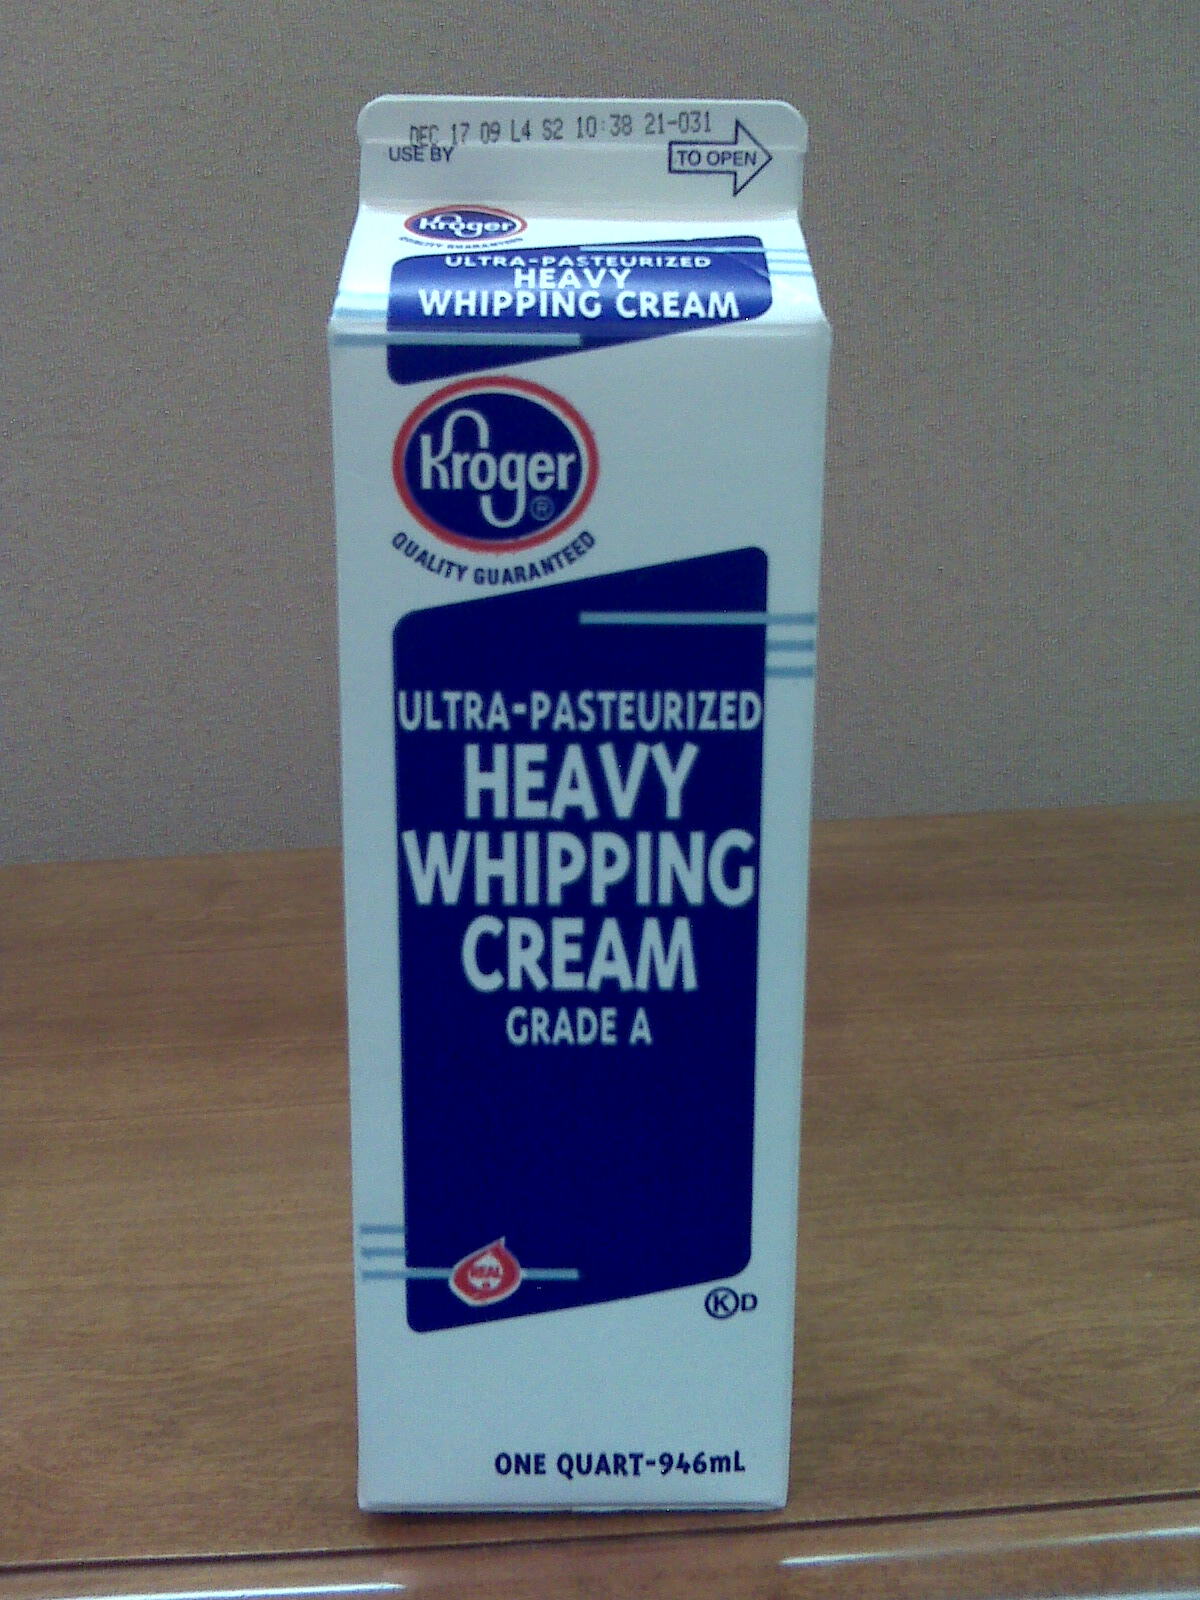 Recall: Great Value/Kroger Half & Half and Heavy Whipping ...